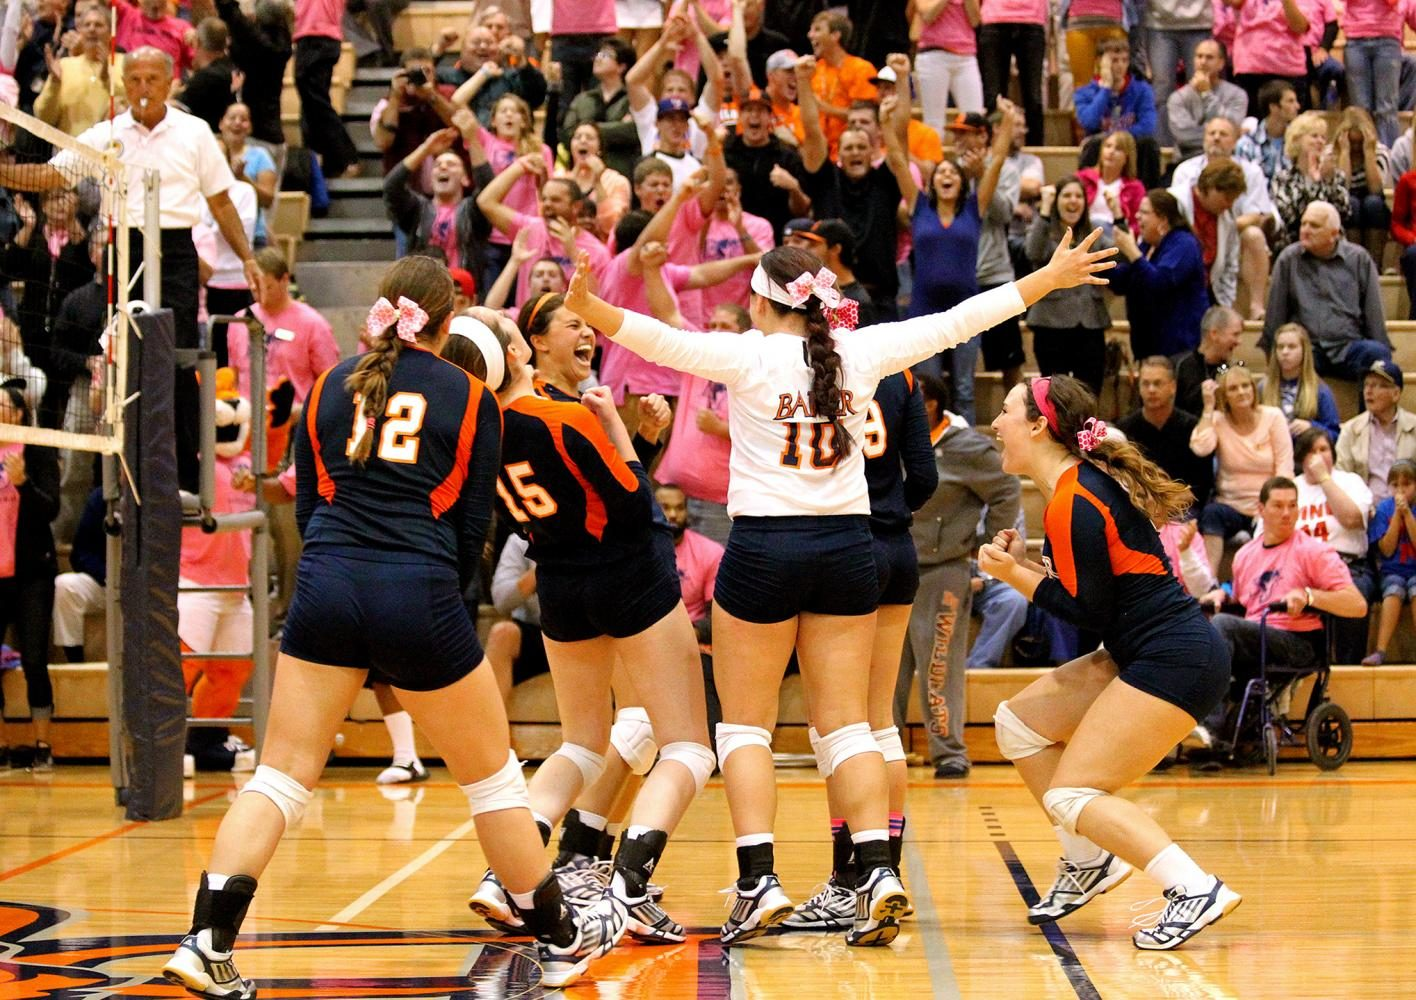 The volleyball team celebrates winning a point during the Pink Out game against rival MNU on Oct. 15, 2013, in Collins Center. The proceeds from the game benefited Baker volleyball alumna Katie Jaschke, who had been recently diagnosed with breast cancer. The rowdy crowd made this one of the most entertaining events to cover, and it was incredible to see the Baker community rally together to help a former player.